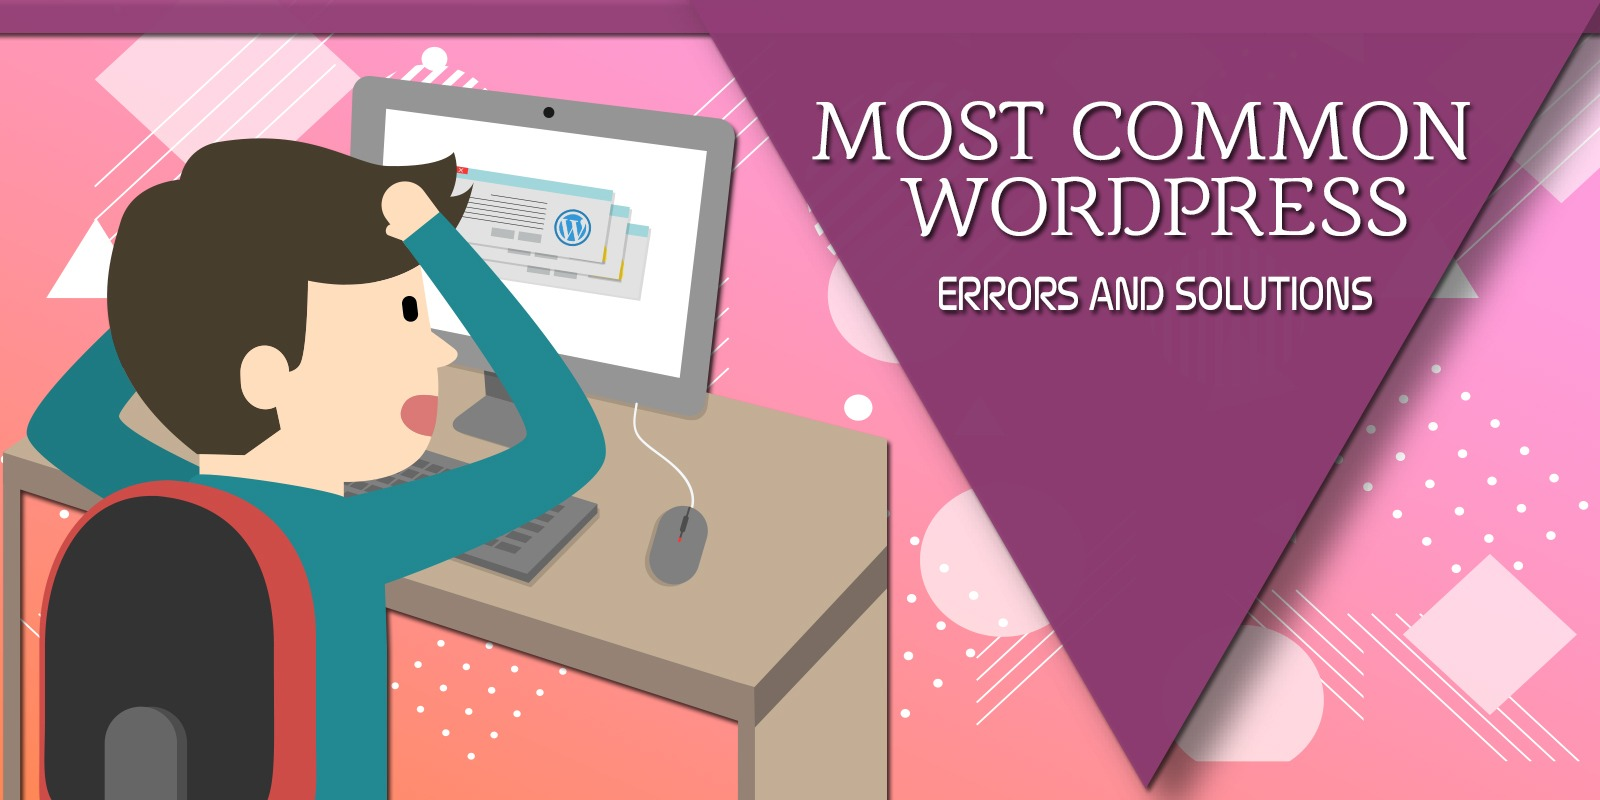 10 Most Common WordPress Errors and Solutions to Fix them